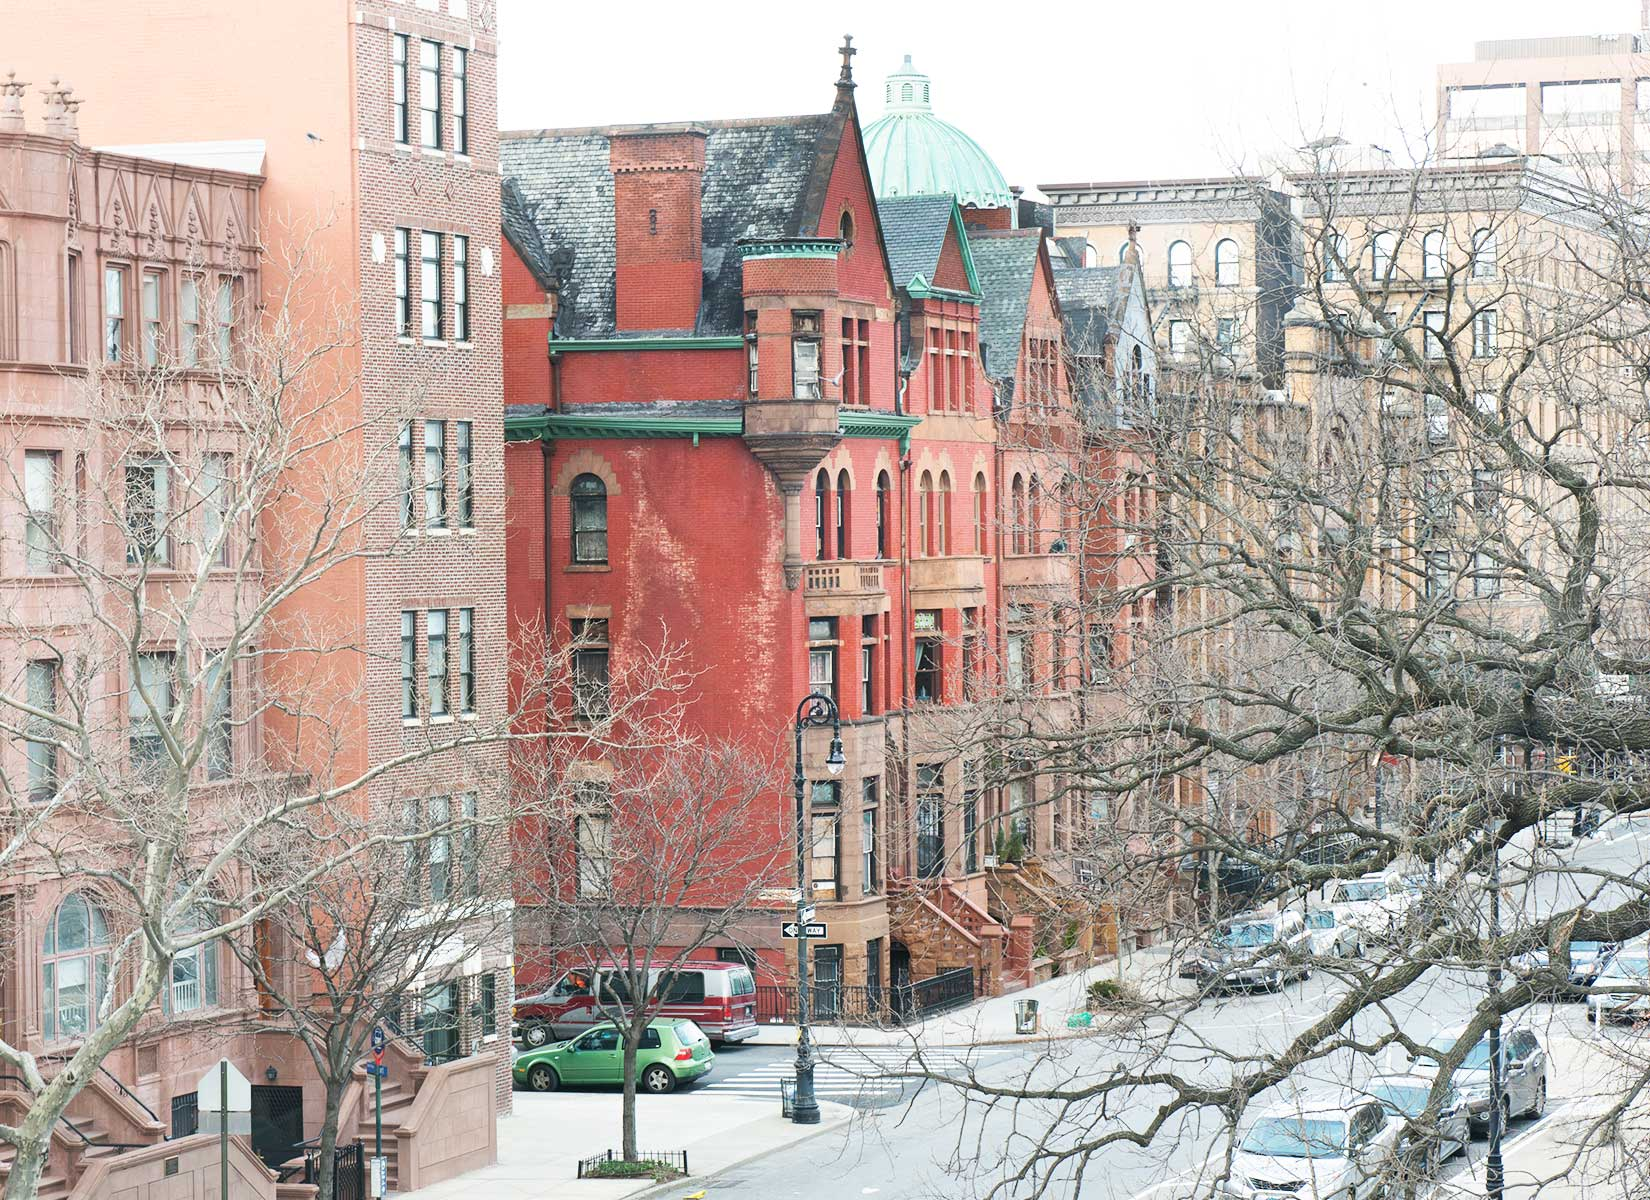 Harlem's architectural grandeur forms the view from the master bedroom window.